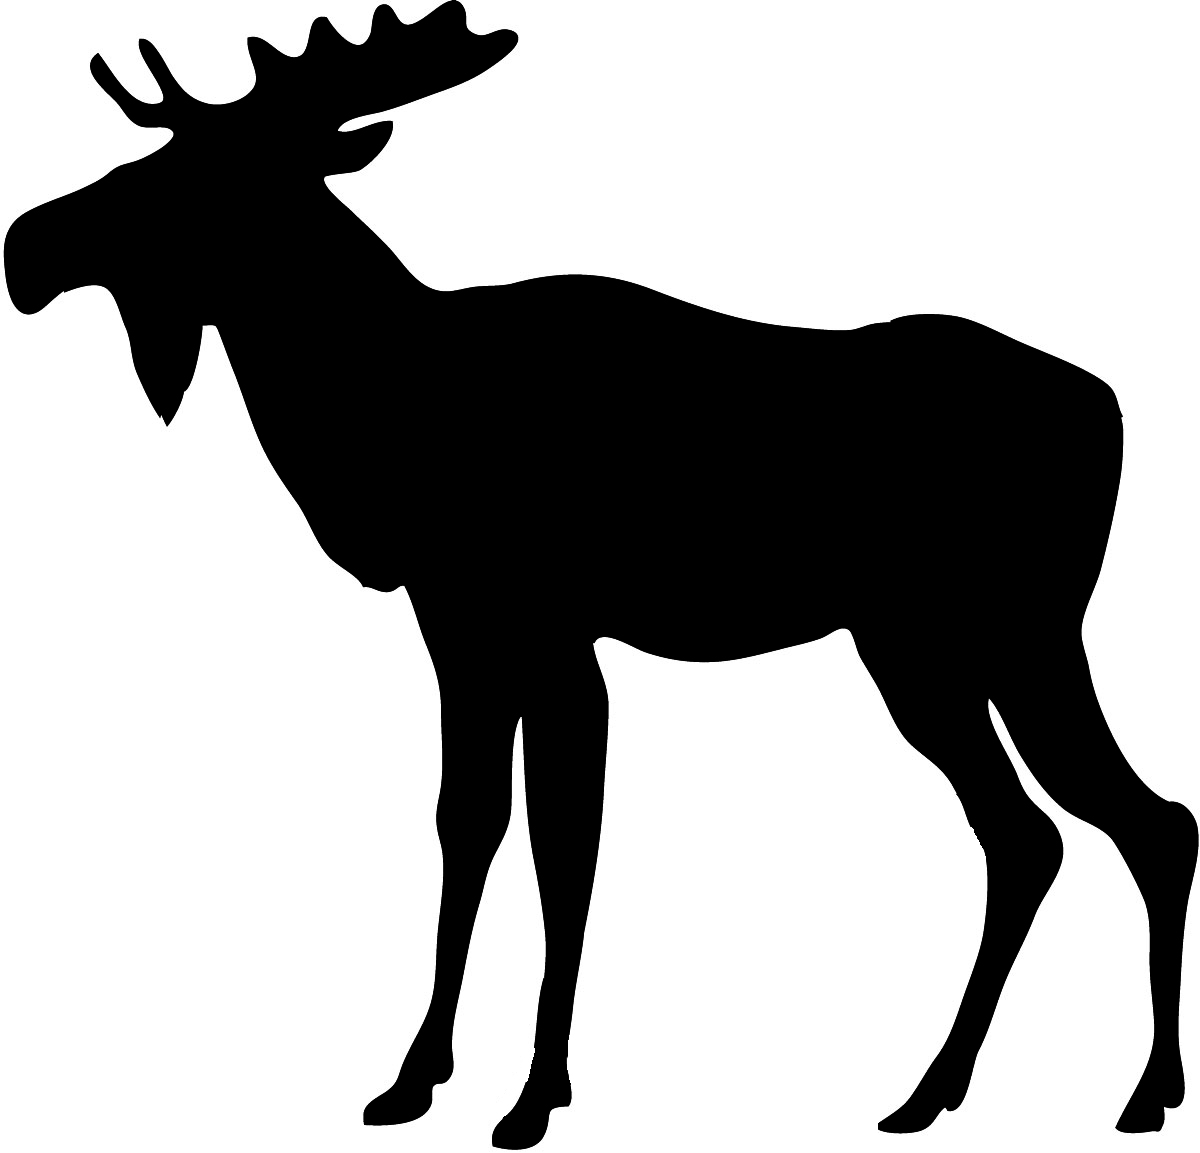 Free wildlife clipart images graphic free download Moose clip art free wildlife clipart - ClipartBarn graphic free download